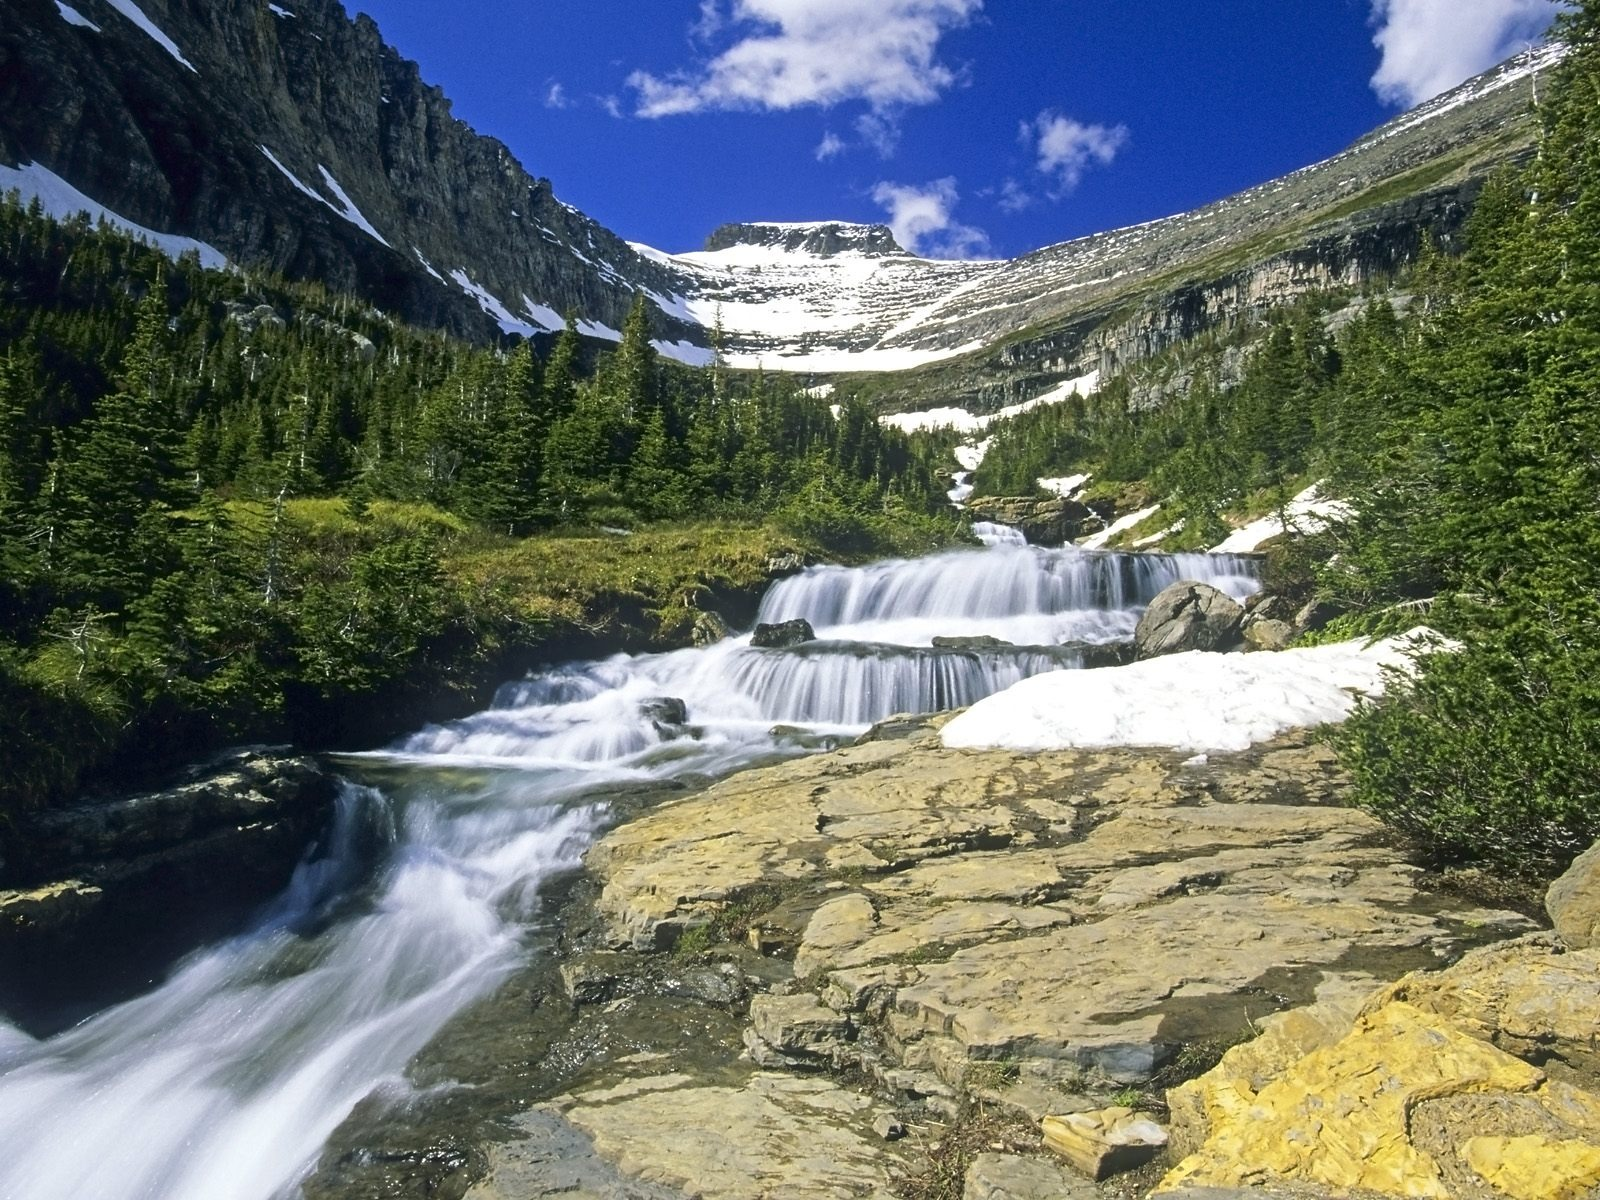 Waterfall streams wallpaper 10 15 1600x1200 wallpaper for Fly fishing glacier national park